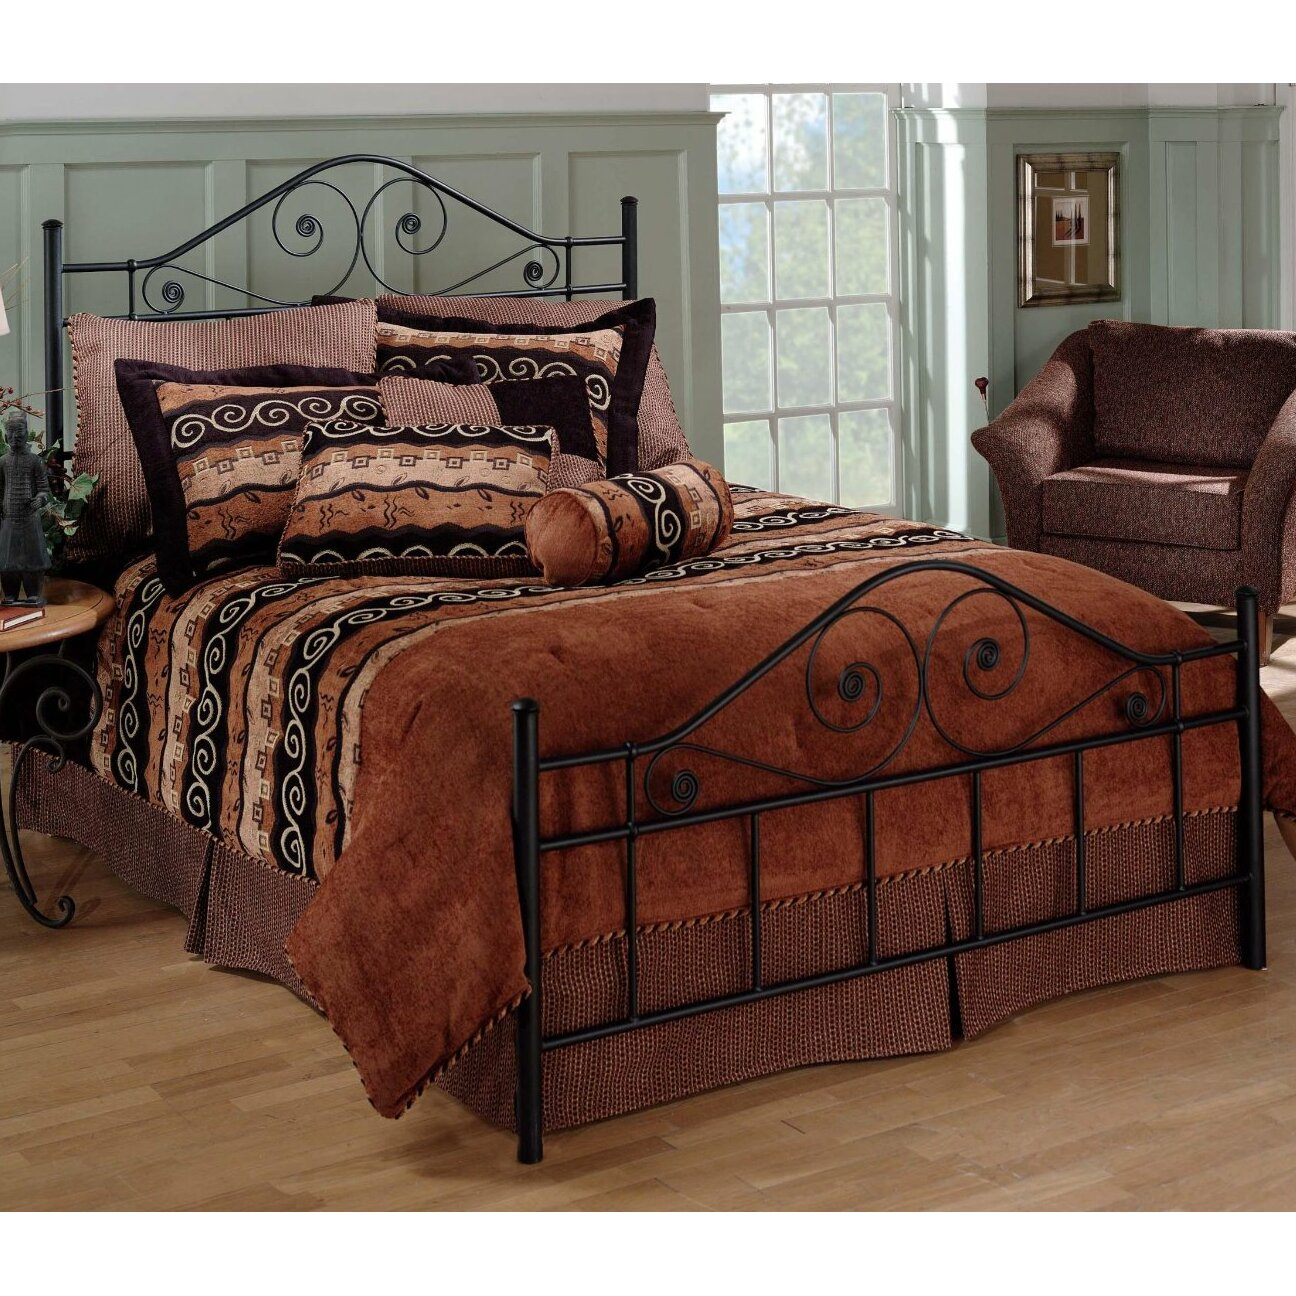 Magnussen Harrison Bedroom Furniture Harrison Wood King Panel Bed Headboard Bedding Bed Linen